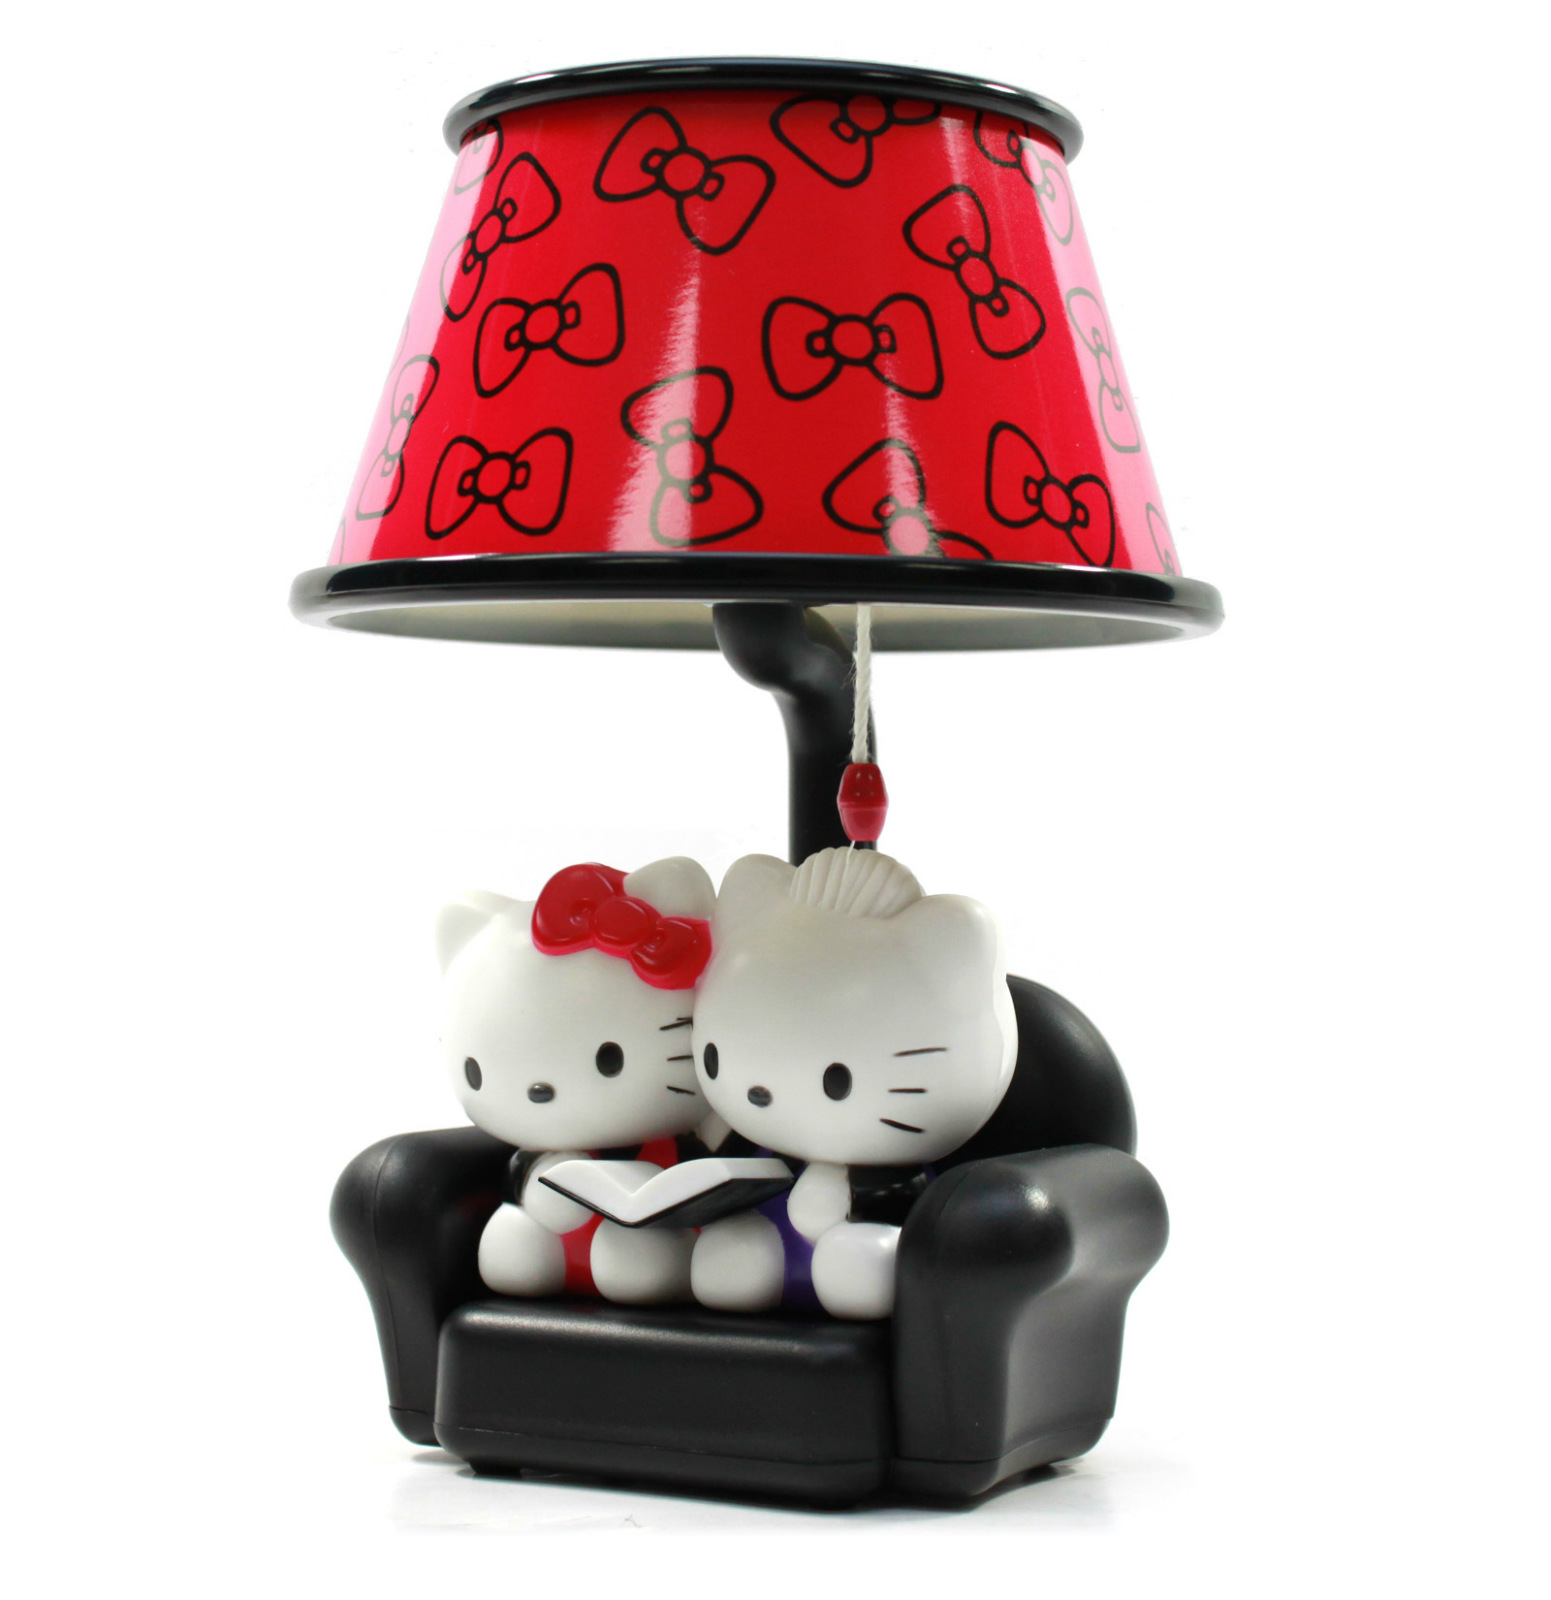 new hello kitty red ribbon pattern sofa shape toy lamp 7 eikoh japan import ebay. Black Bedroom Furniture Sets. Home Design Ideas